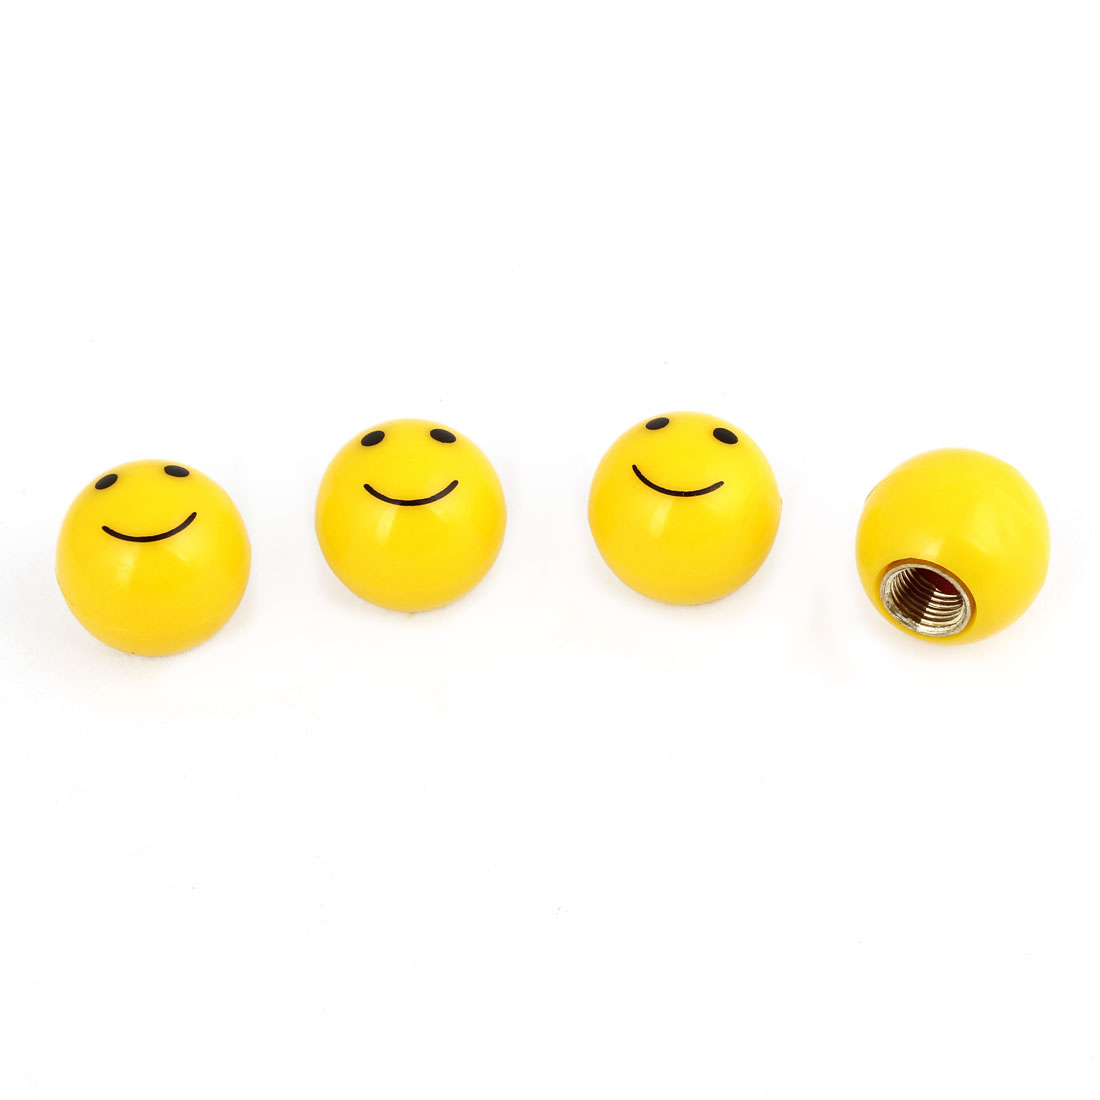 4 Pcs Yellow 8mm Threaded Hole Dia Round Smile Face Design Car Tire Valve Caps